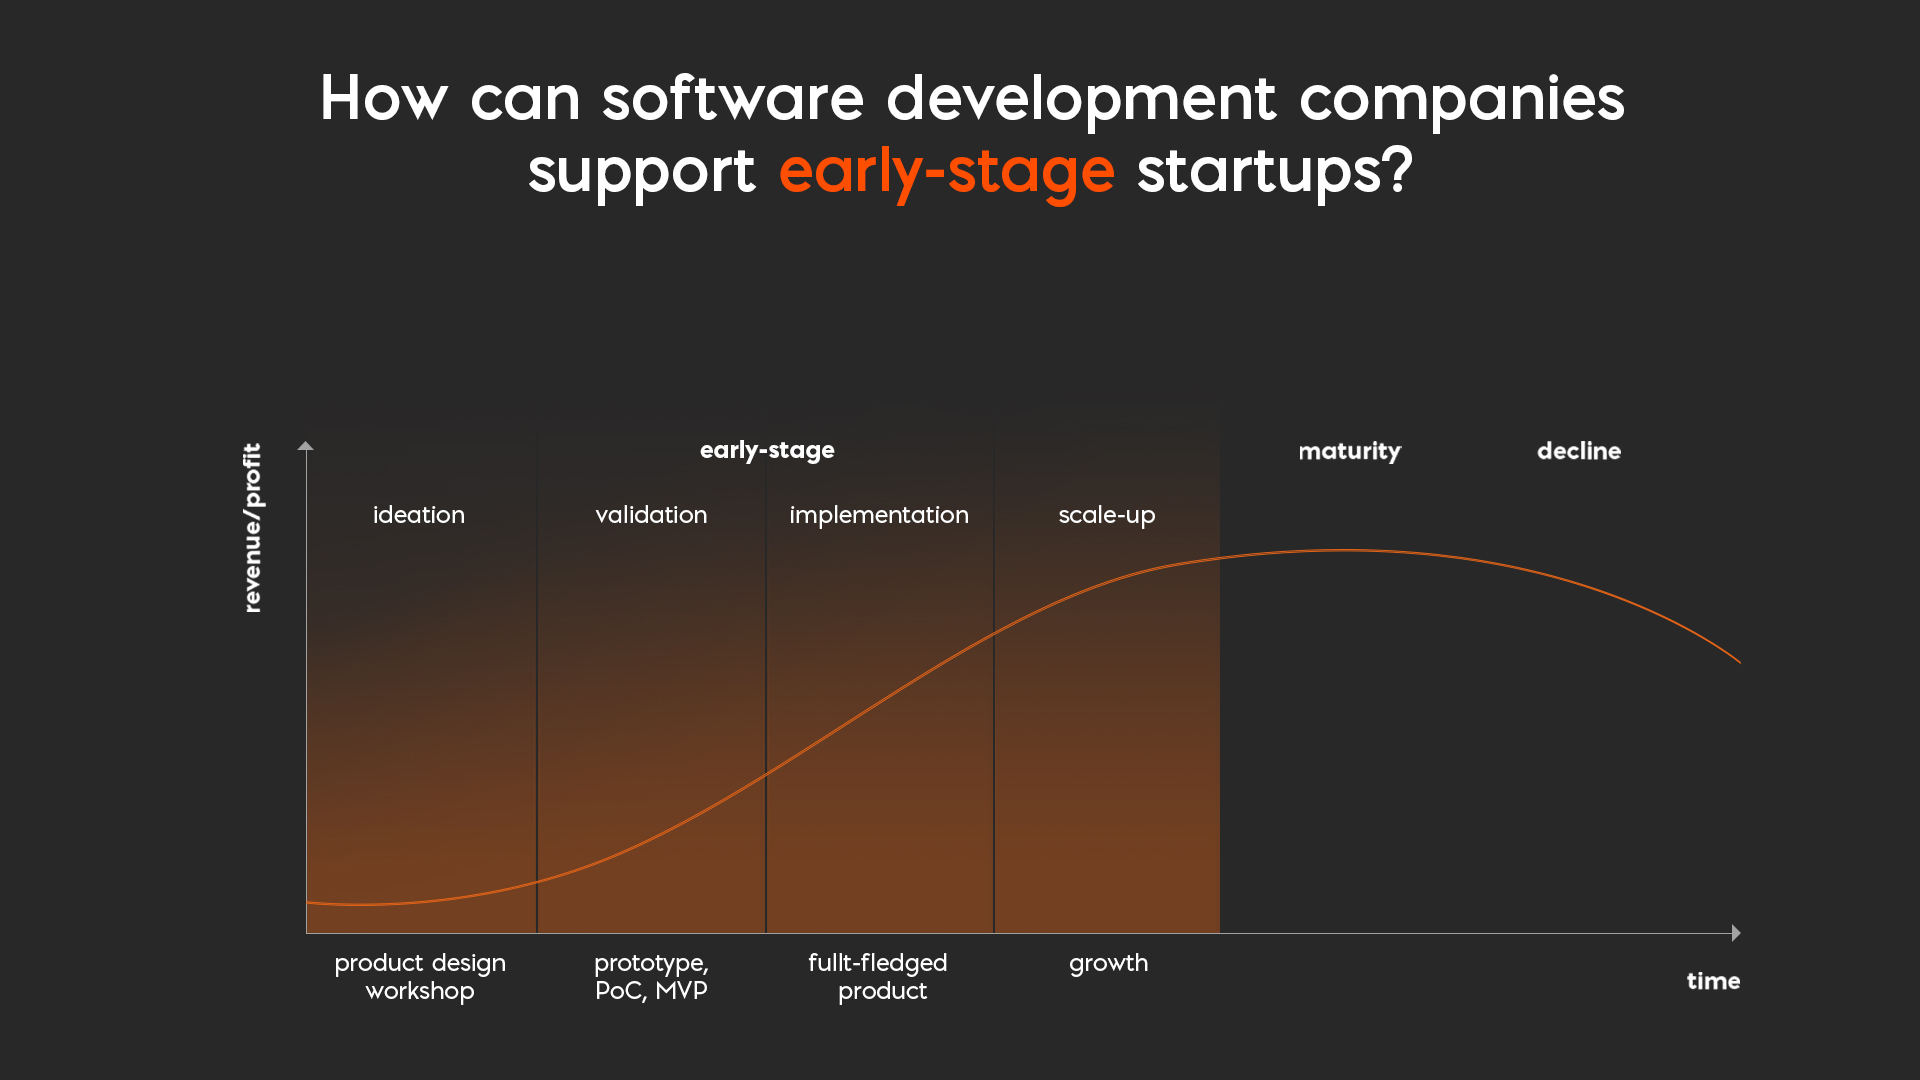 How can software development companies support early-stage startups?